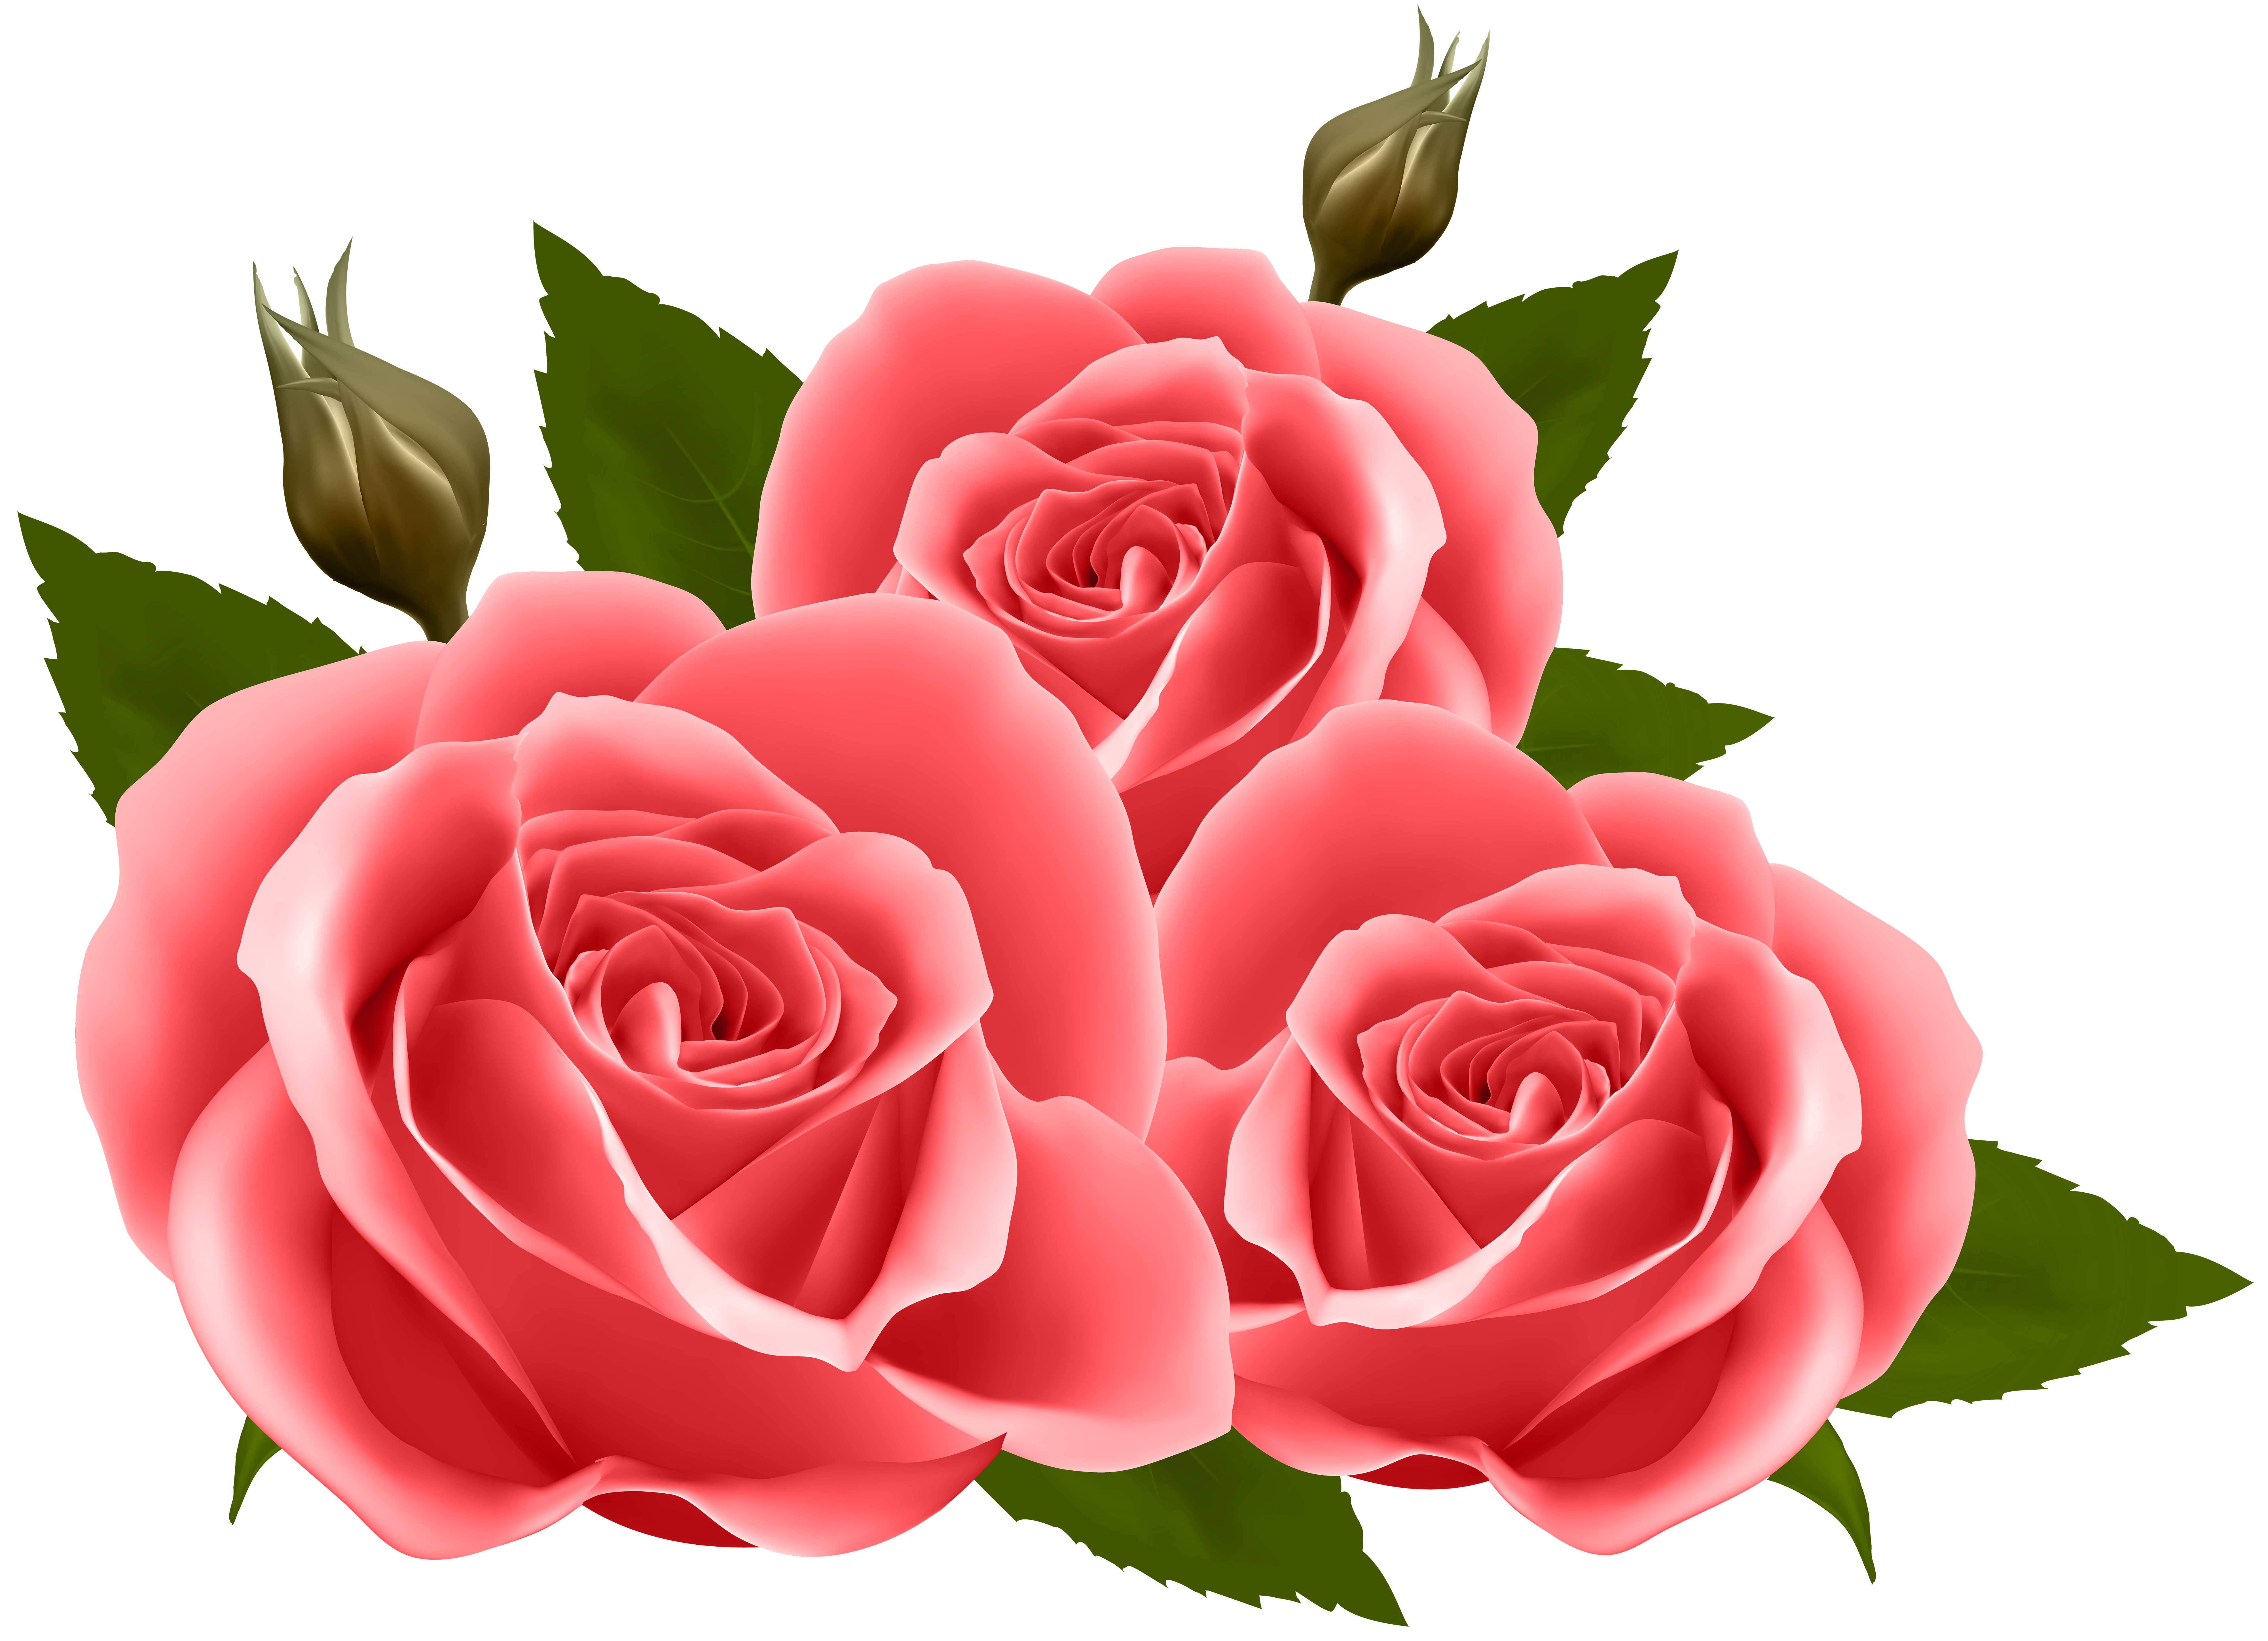 Red Roses PNG Clip Art Image.